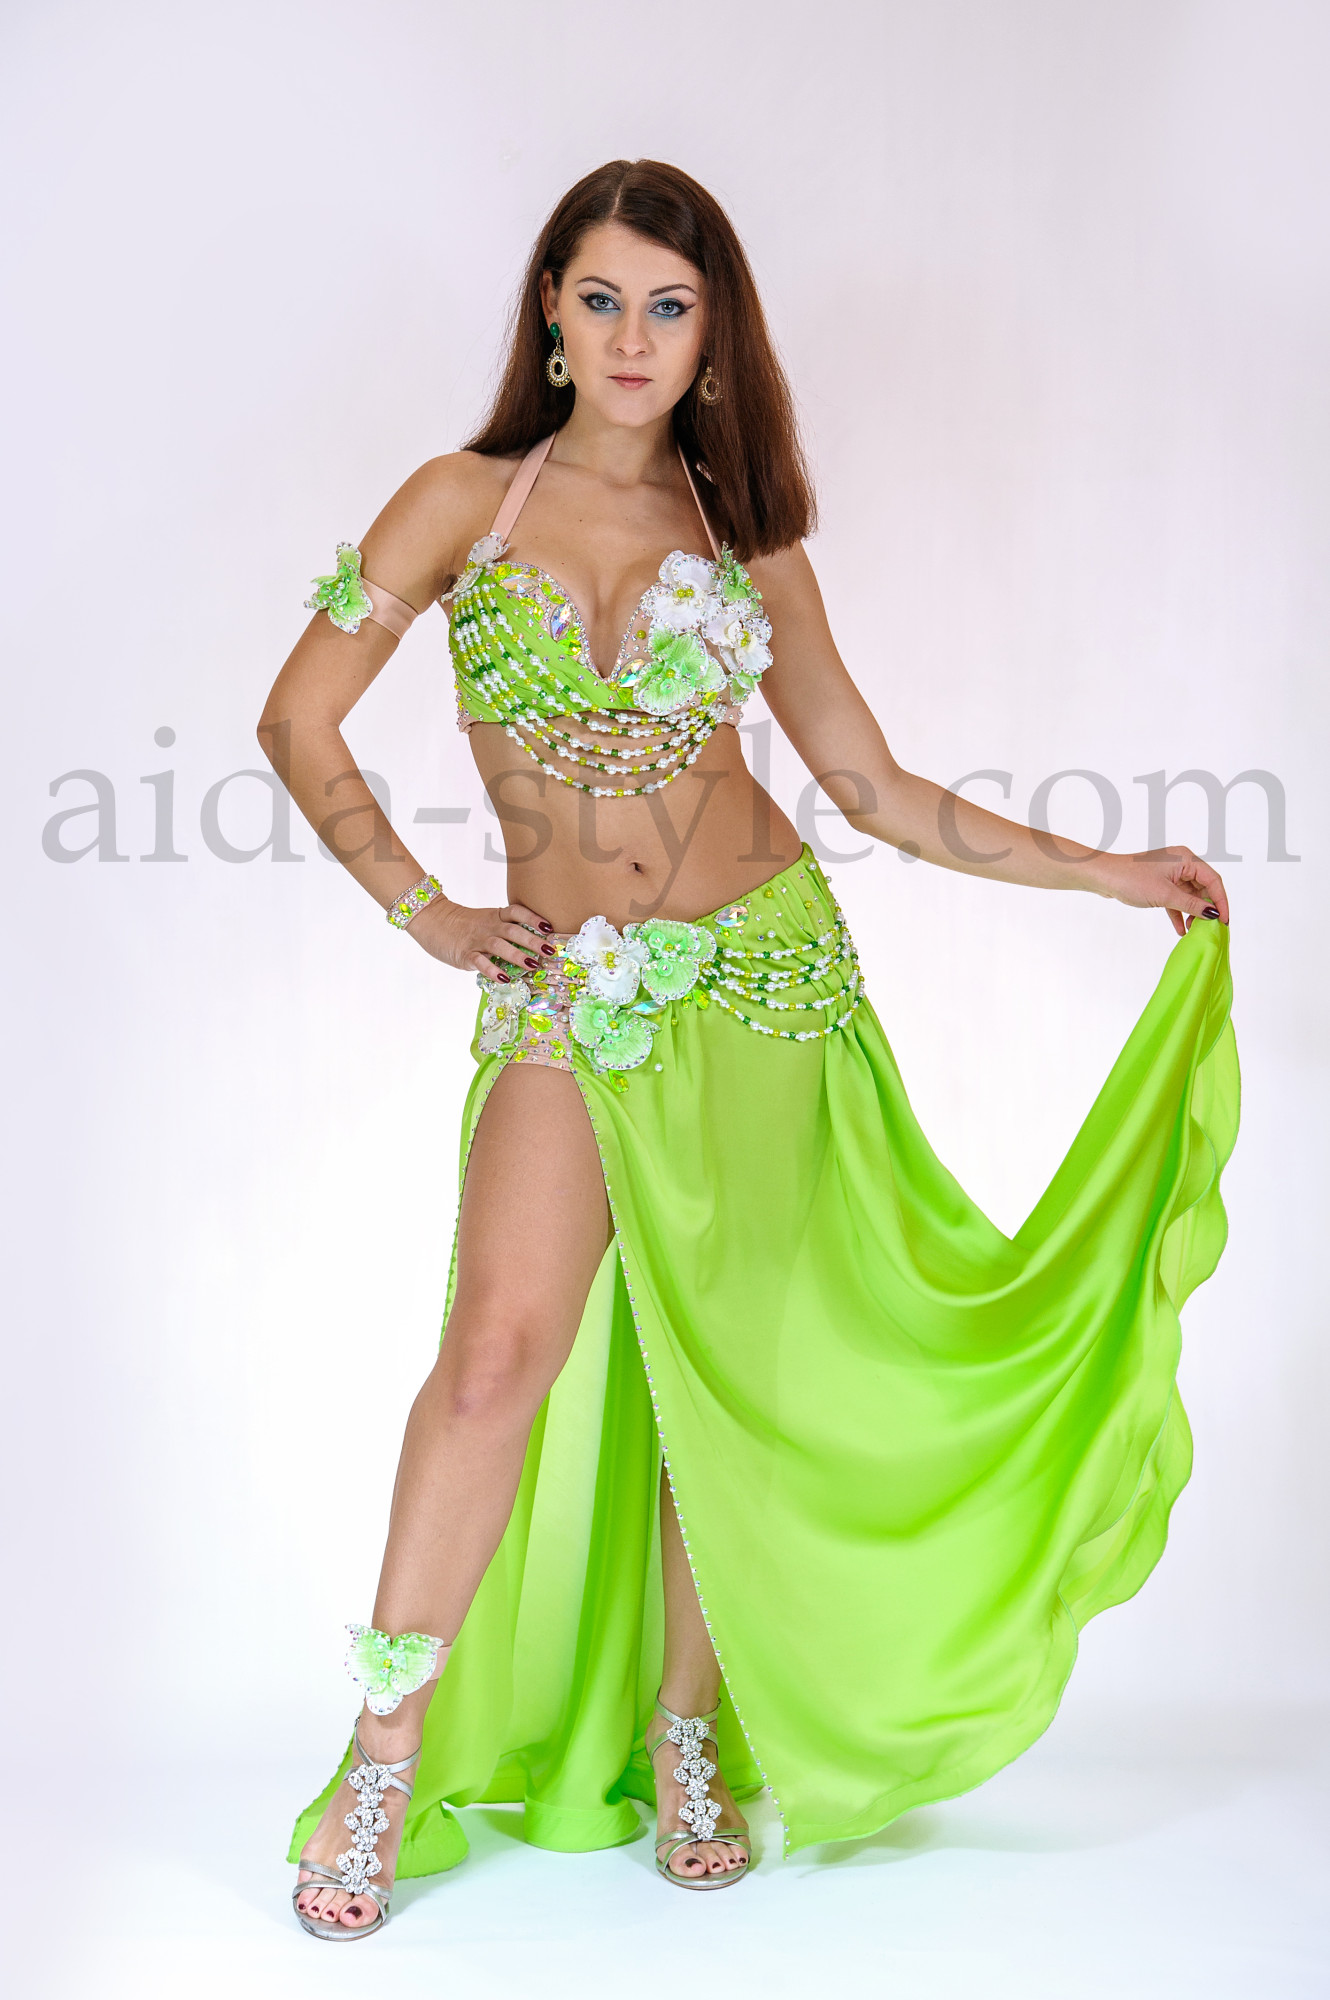 This light green belly dance costume with beading and flowers is light and convenient to wear. Beading nicely highlights the hips and chest movements. Looks wonderful under scene pillars.